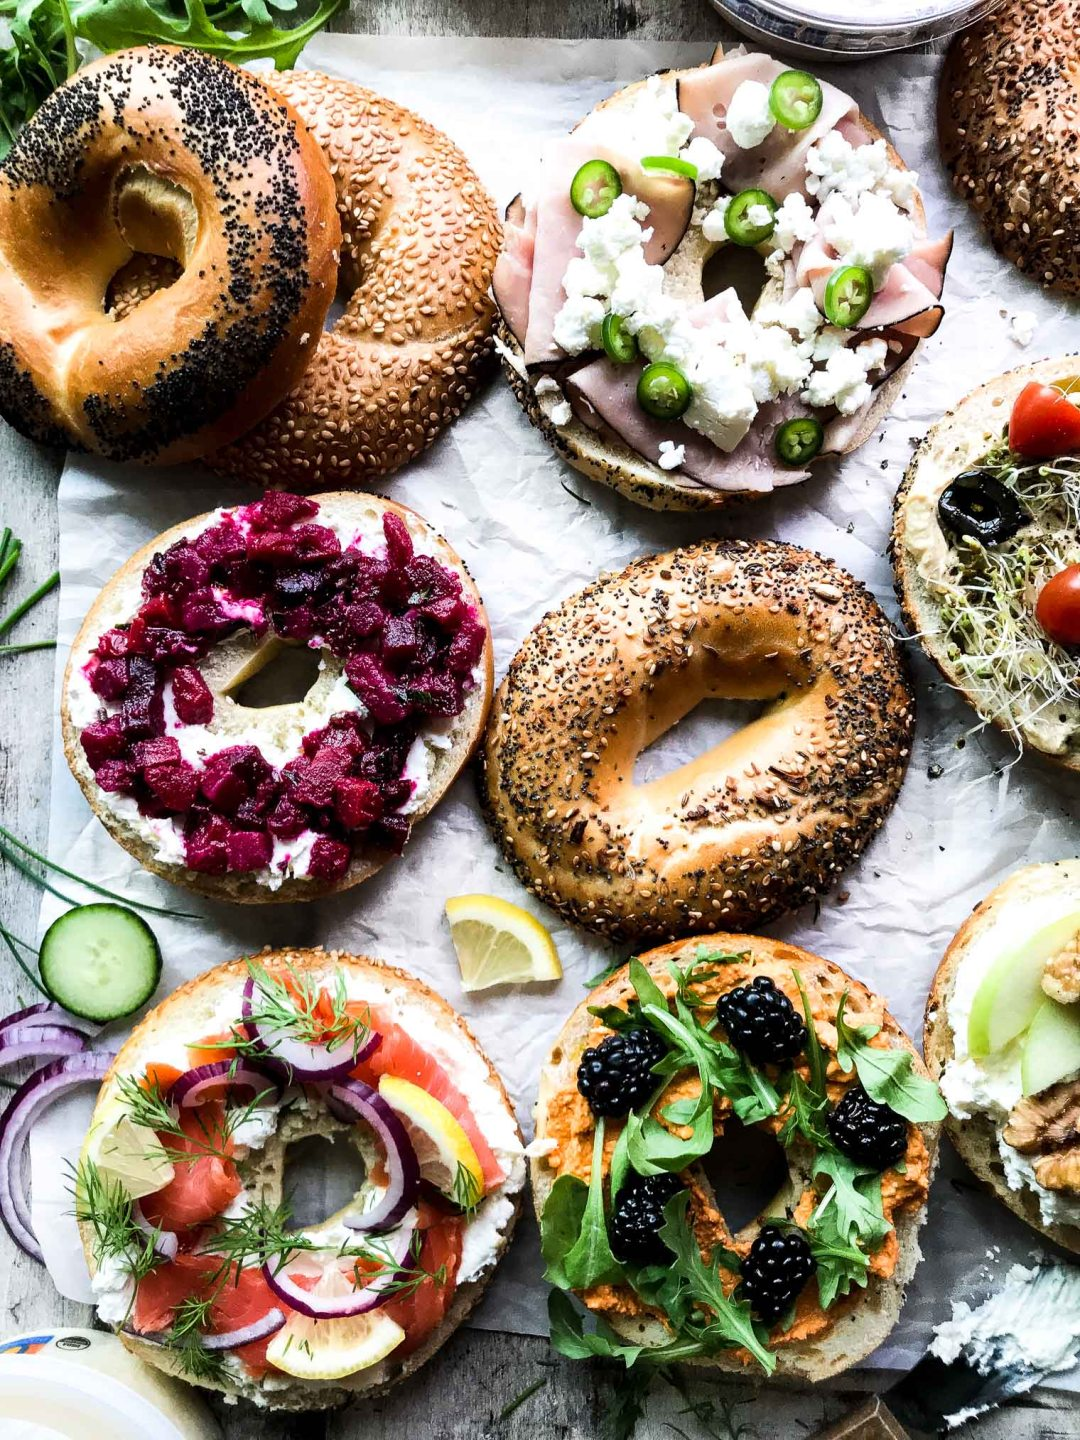 Irresistible Bagel Toast (your new favorite snack!) Bagels topped with colorful toppings